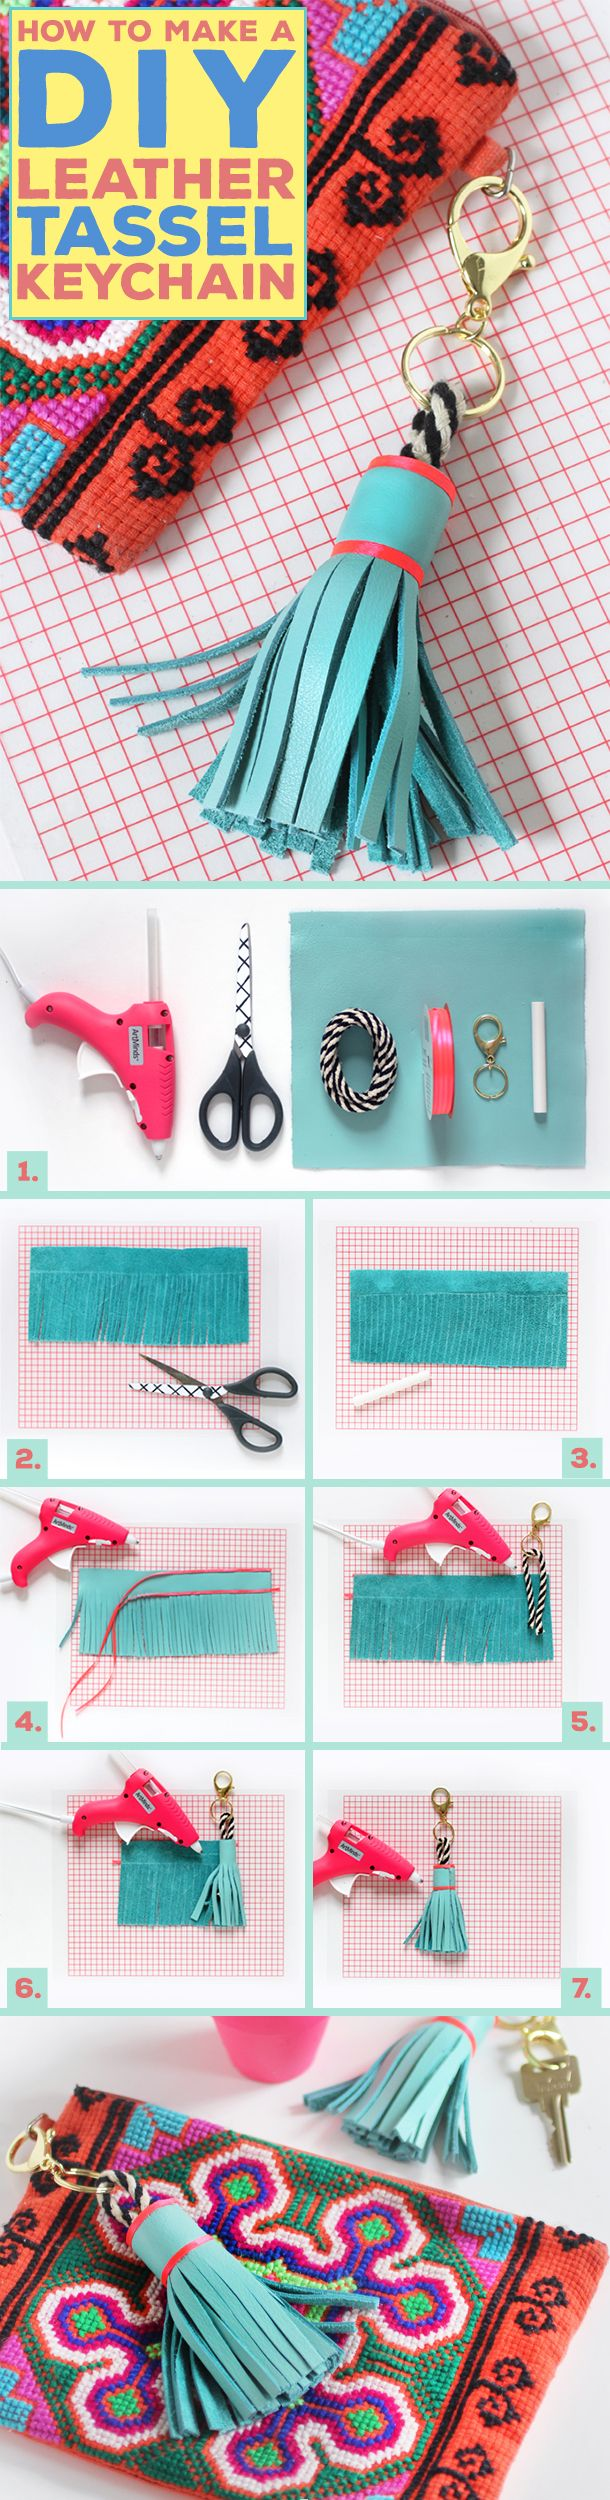 It's so easy to make a DIY leather tassel keychain thanks to these tips and instructions from @ispydiy. Use it to accessorize your favorite clutch or give it as a gift.